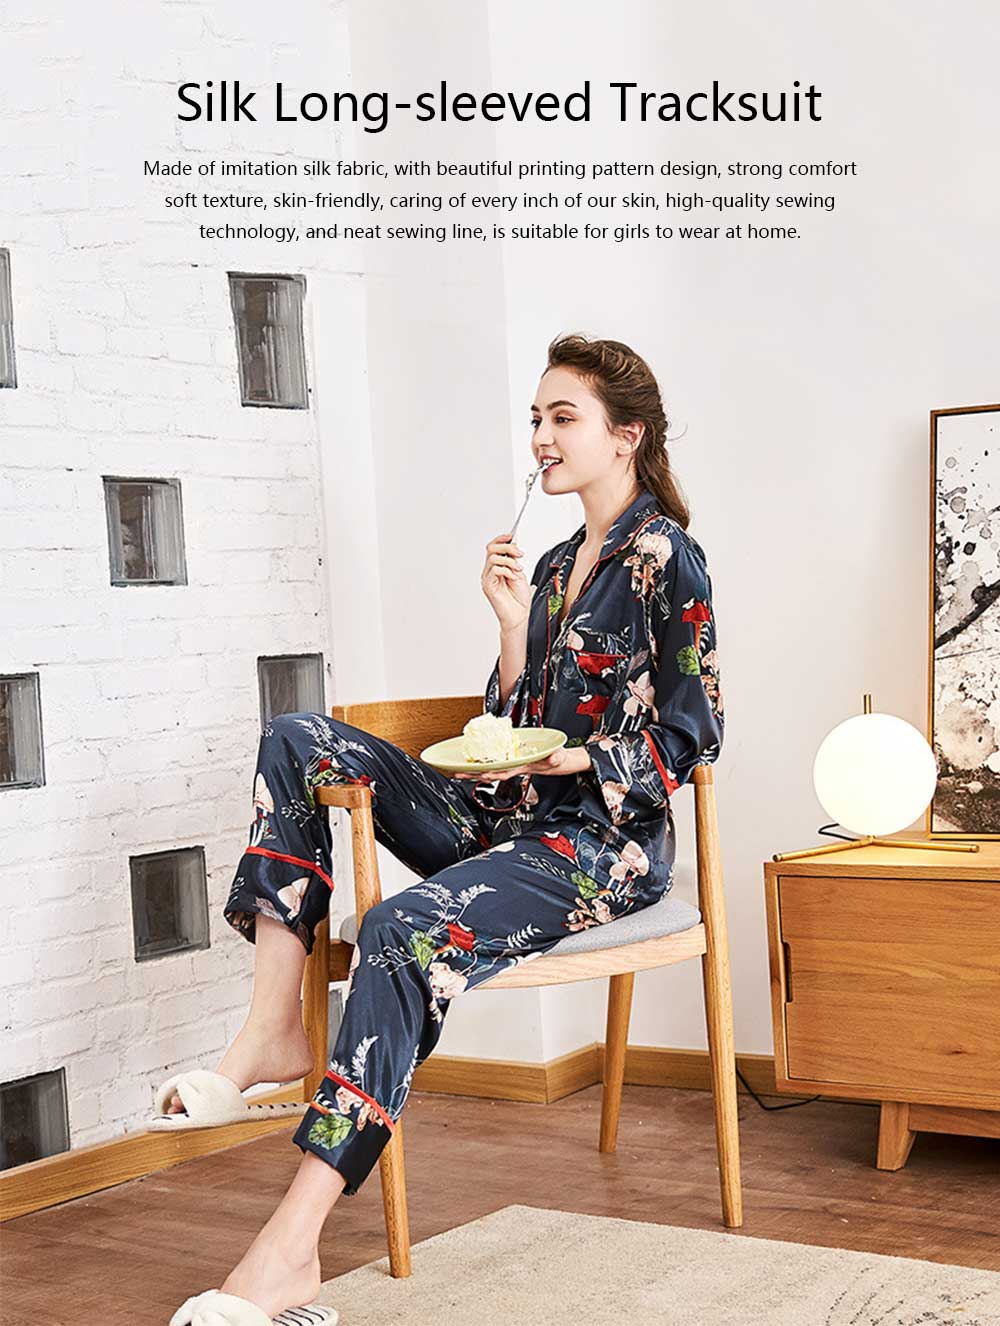 Imitation Silk Fabric Long-sleeved Tracksuit, Botanical Floral Pattern Printed Pajamas, Two-piece Suit 0